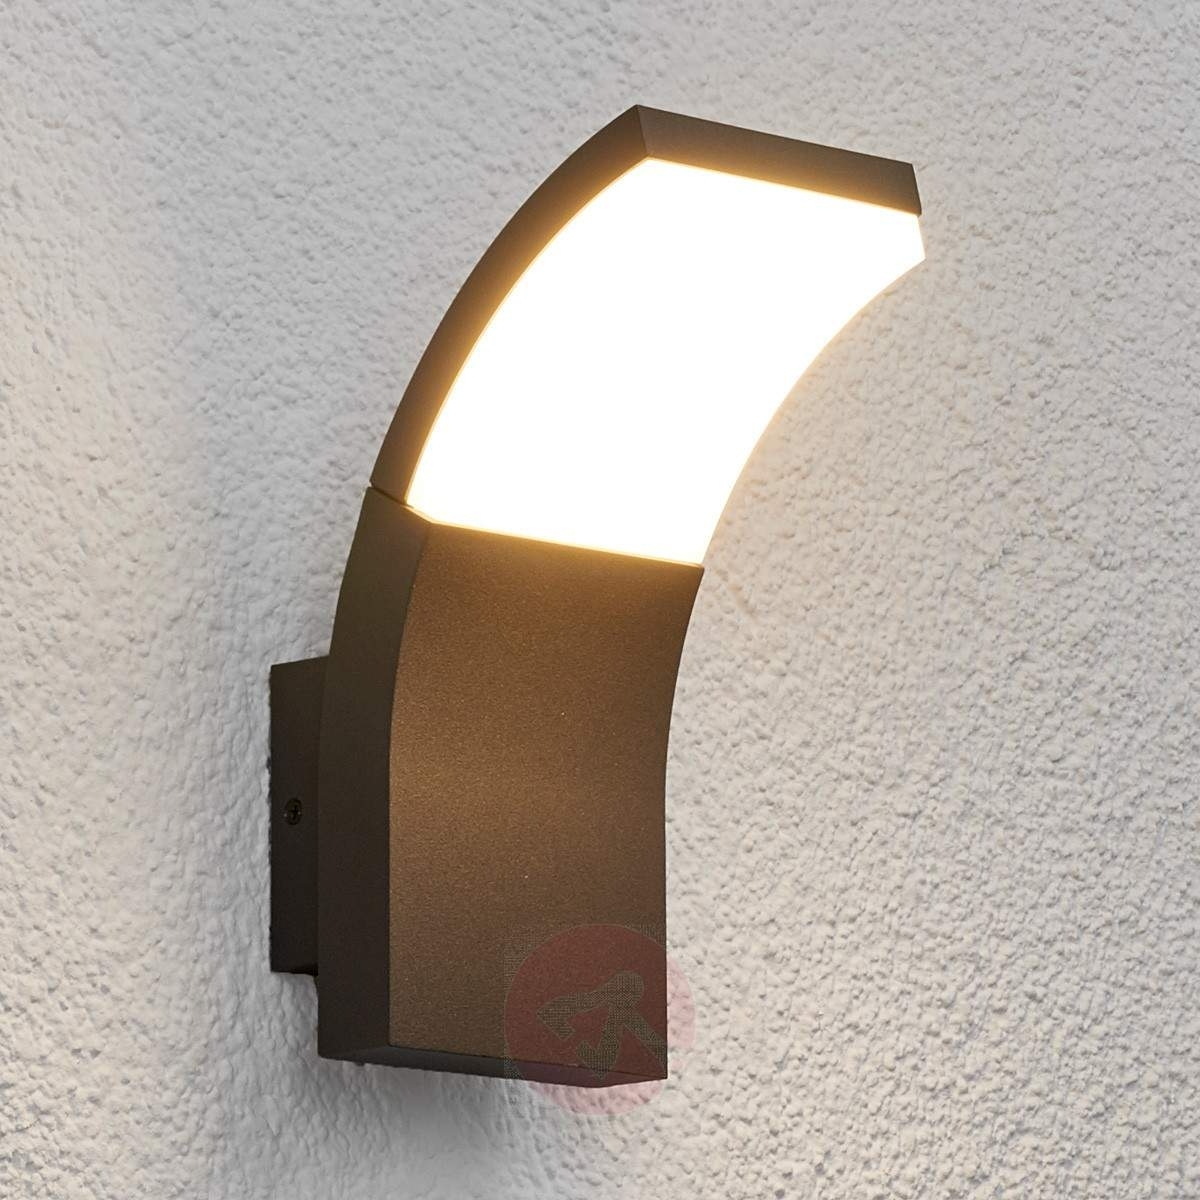 Led Outdoor Wall Lighting Inside Well Known Led Outdoor Wall Light Timm (View 7 of 20)